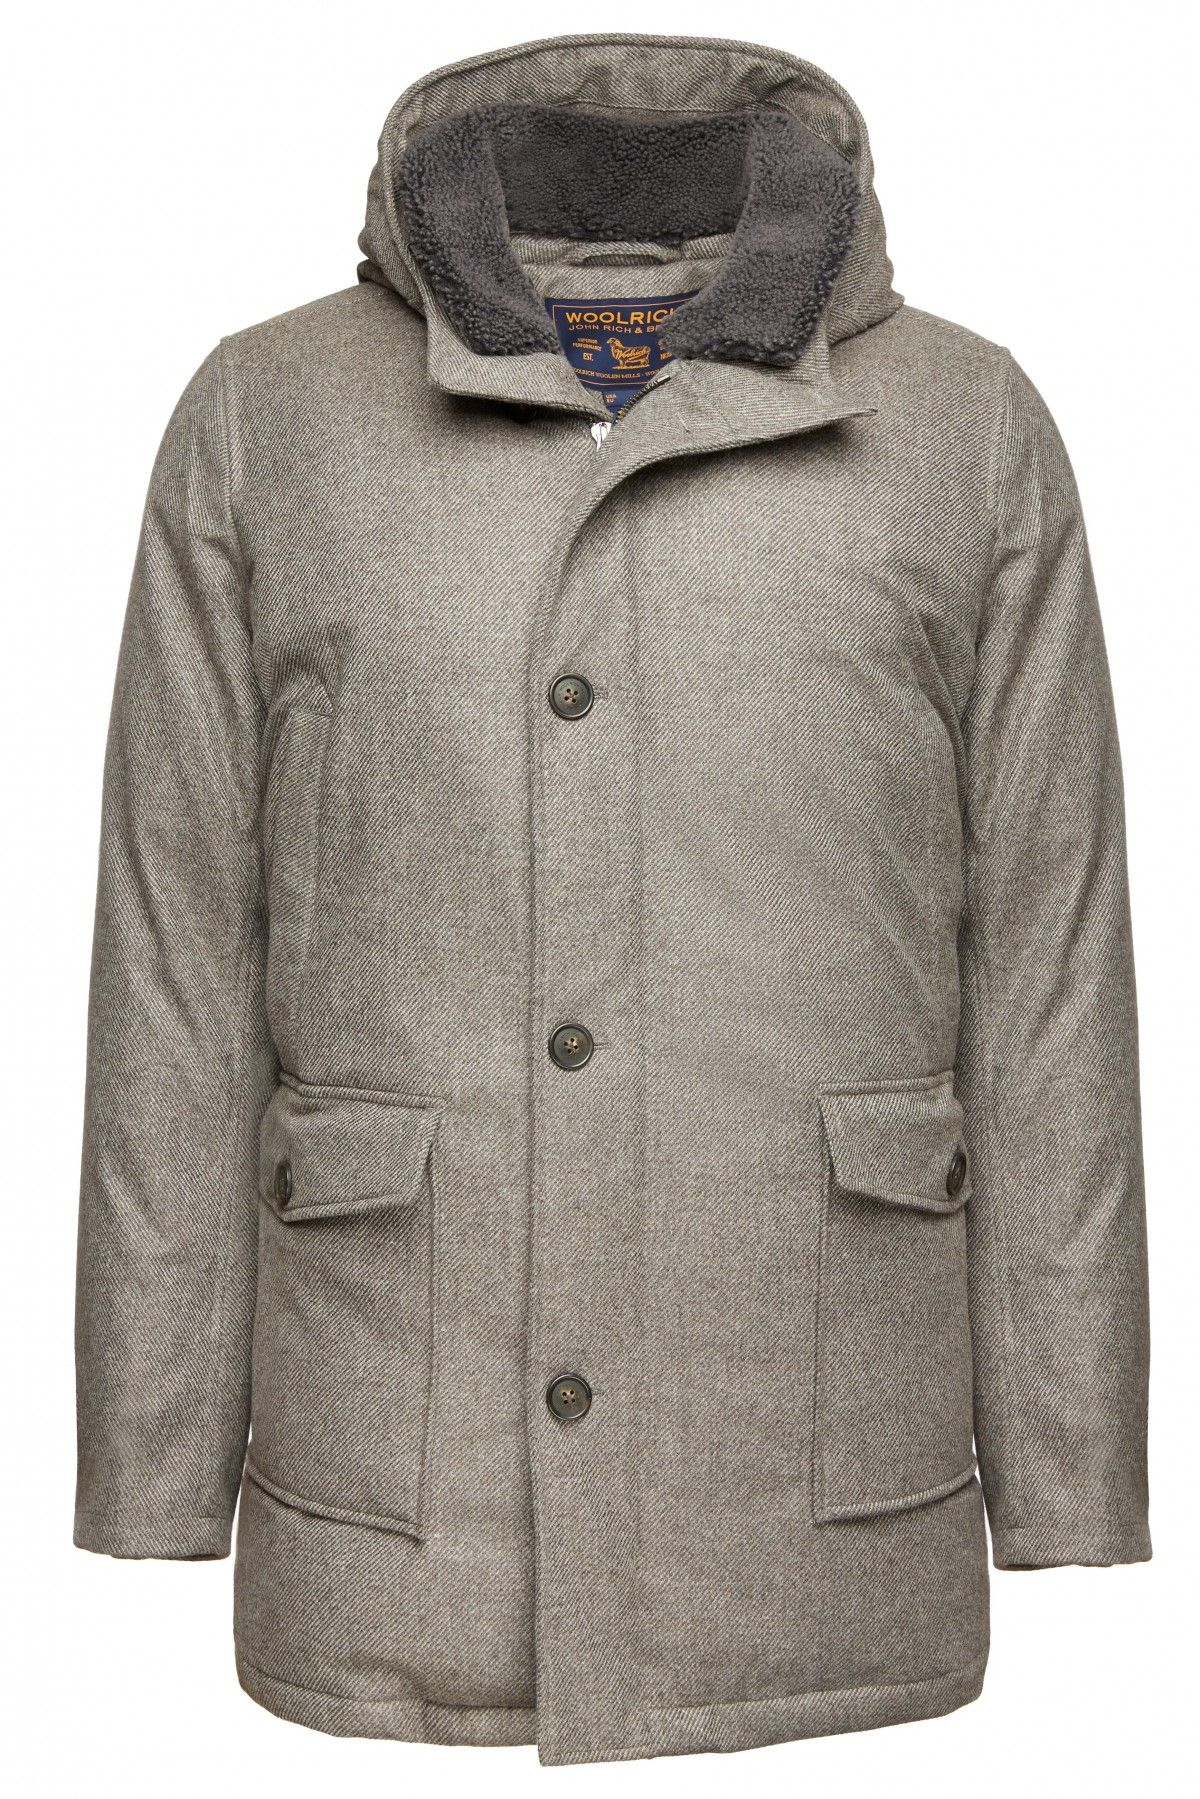 774bf869 Only 35 pieces of this exclusive Woolrich Club Monaco Men's Mackinaw Parka  were produced. Made